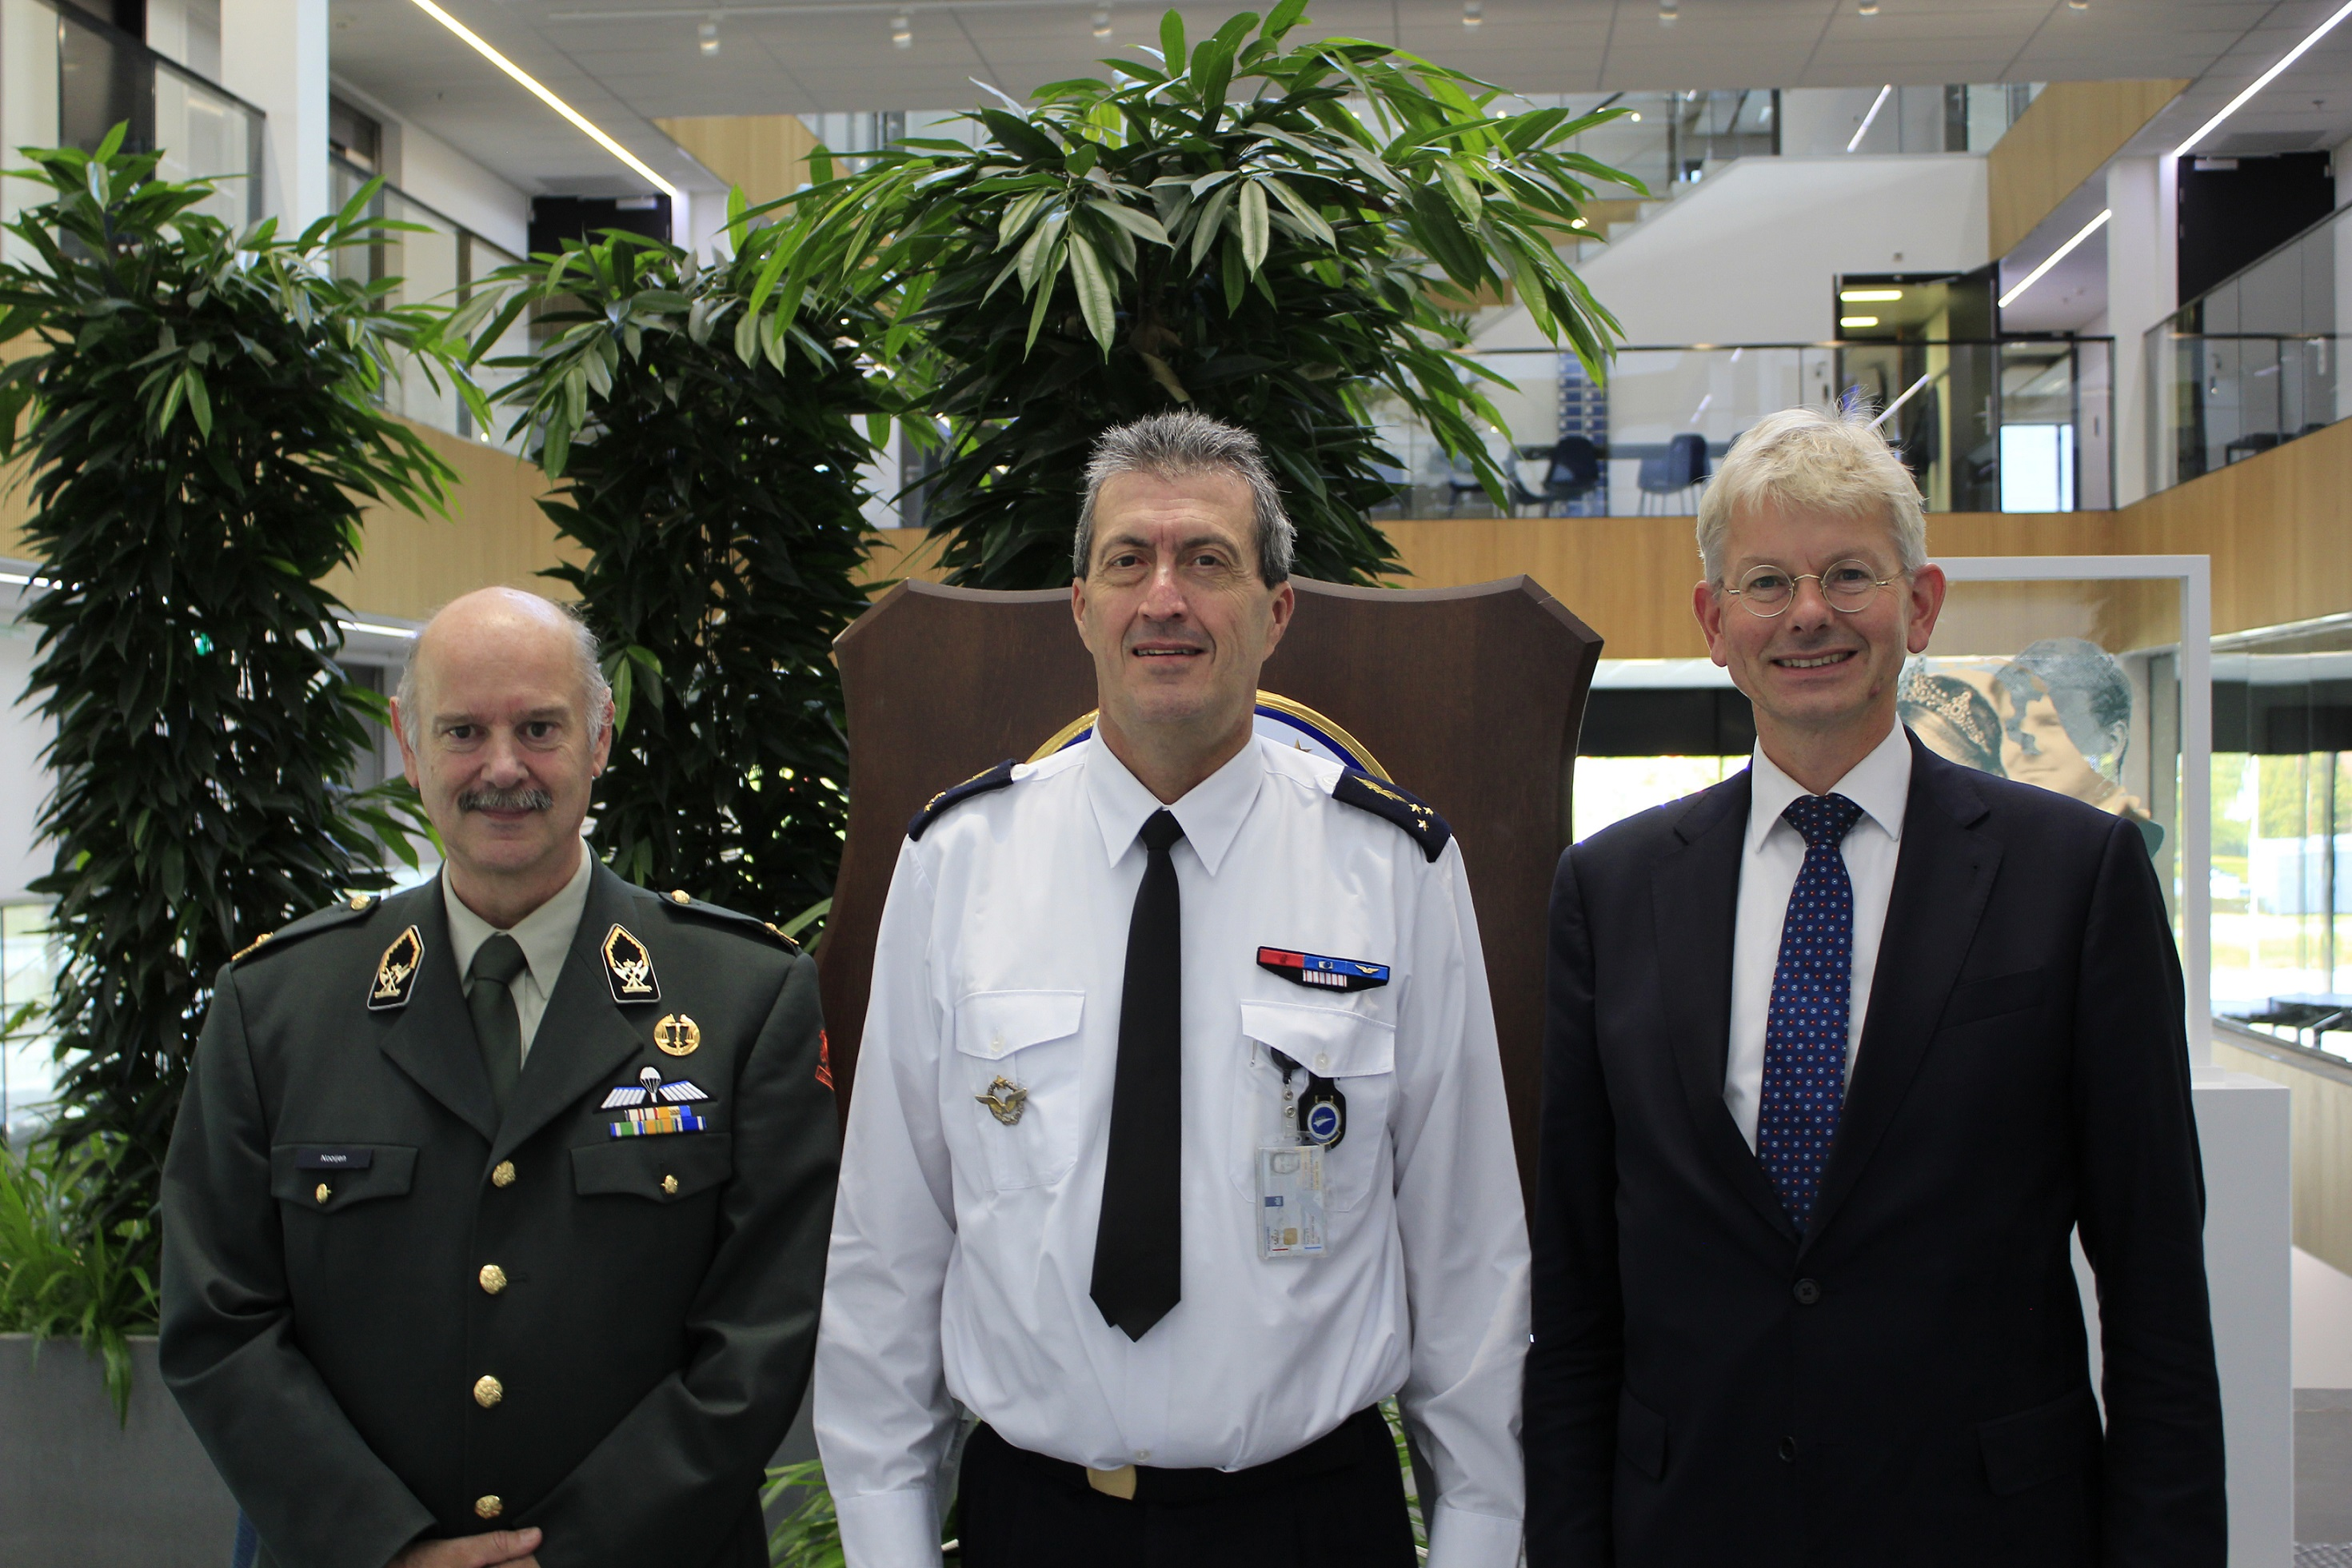 Mr Versluijs and Brigadier General Nooijen meets the Commander EATC